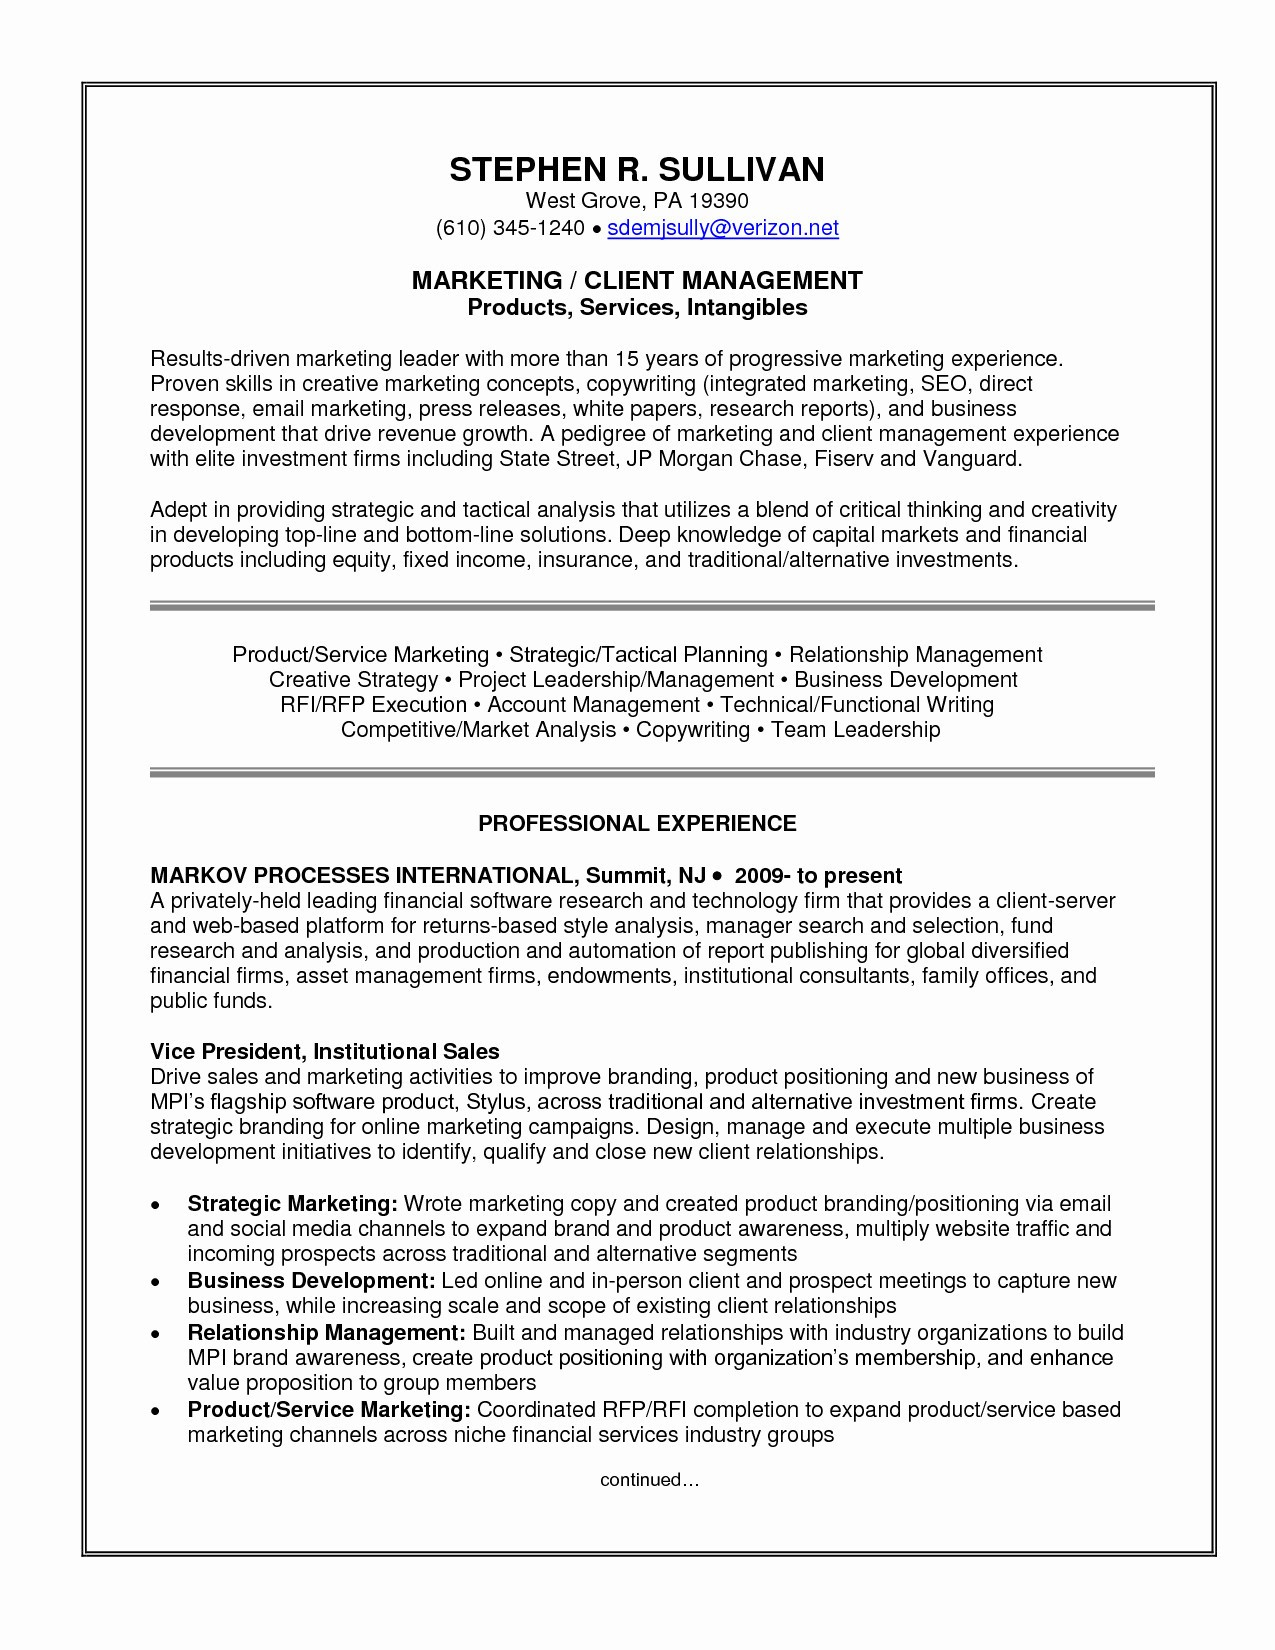 Federal Resume Service - Executive Resume Service Luxury Cfo Resume Examples Resume Writing